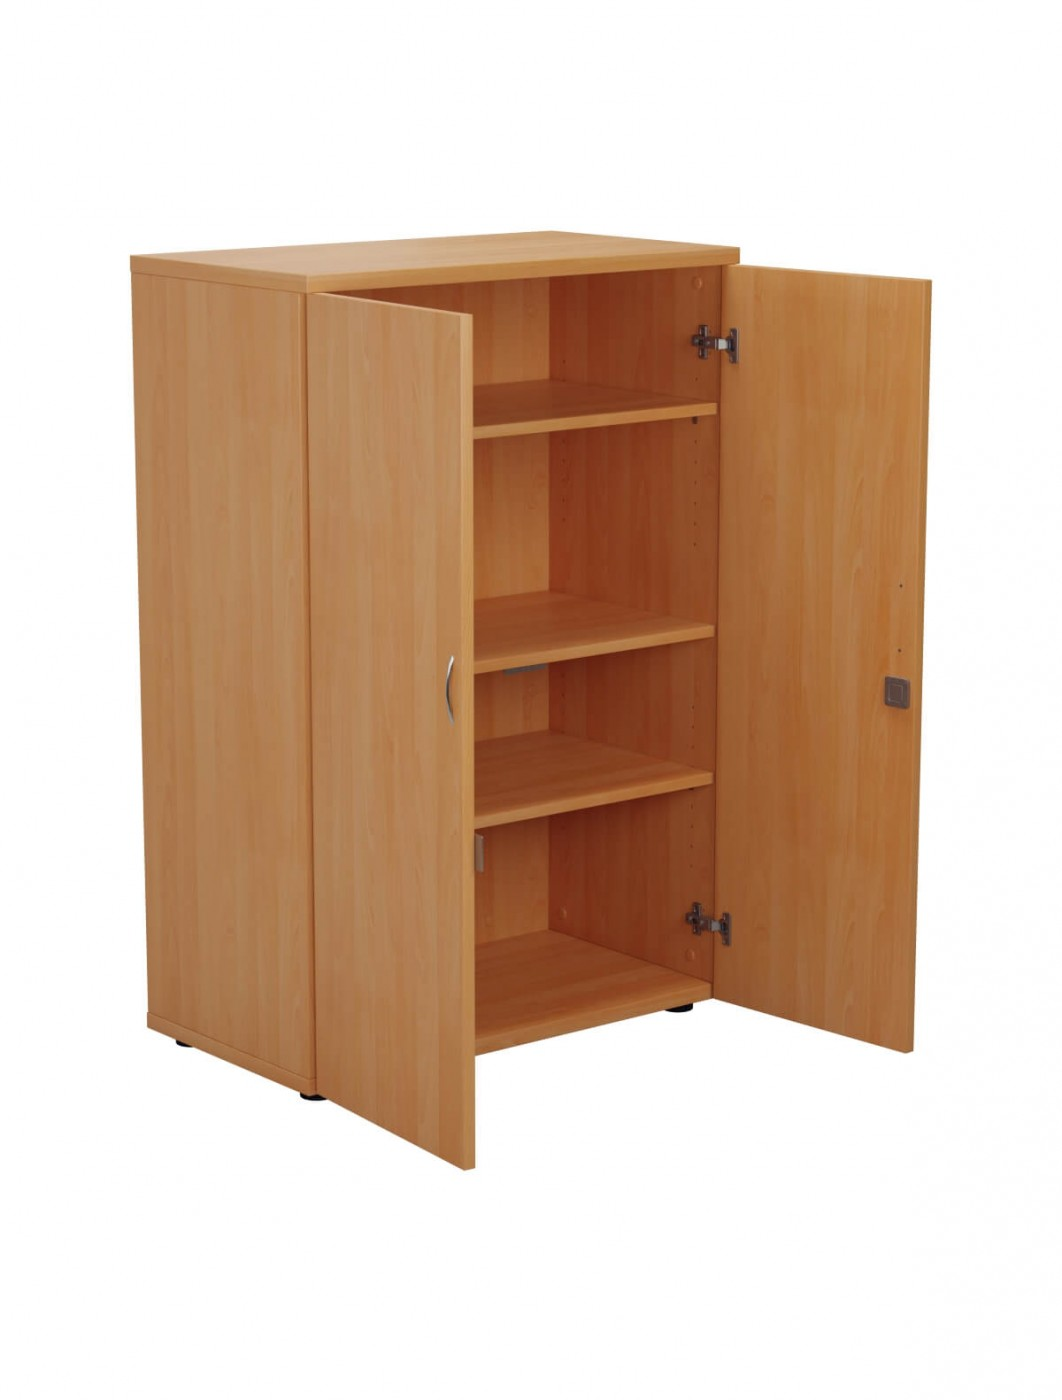 Charmant Office Storage Cupboard   1.2m Cupboard TES1245CP Cupboards   Enlarged View